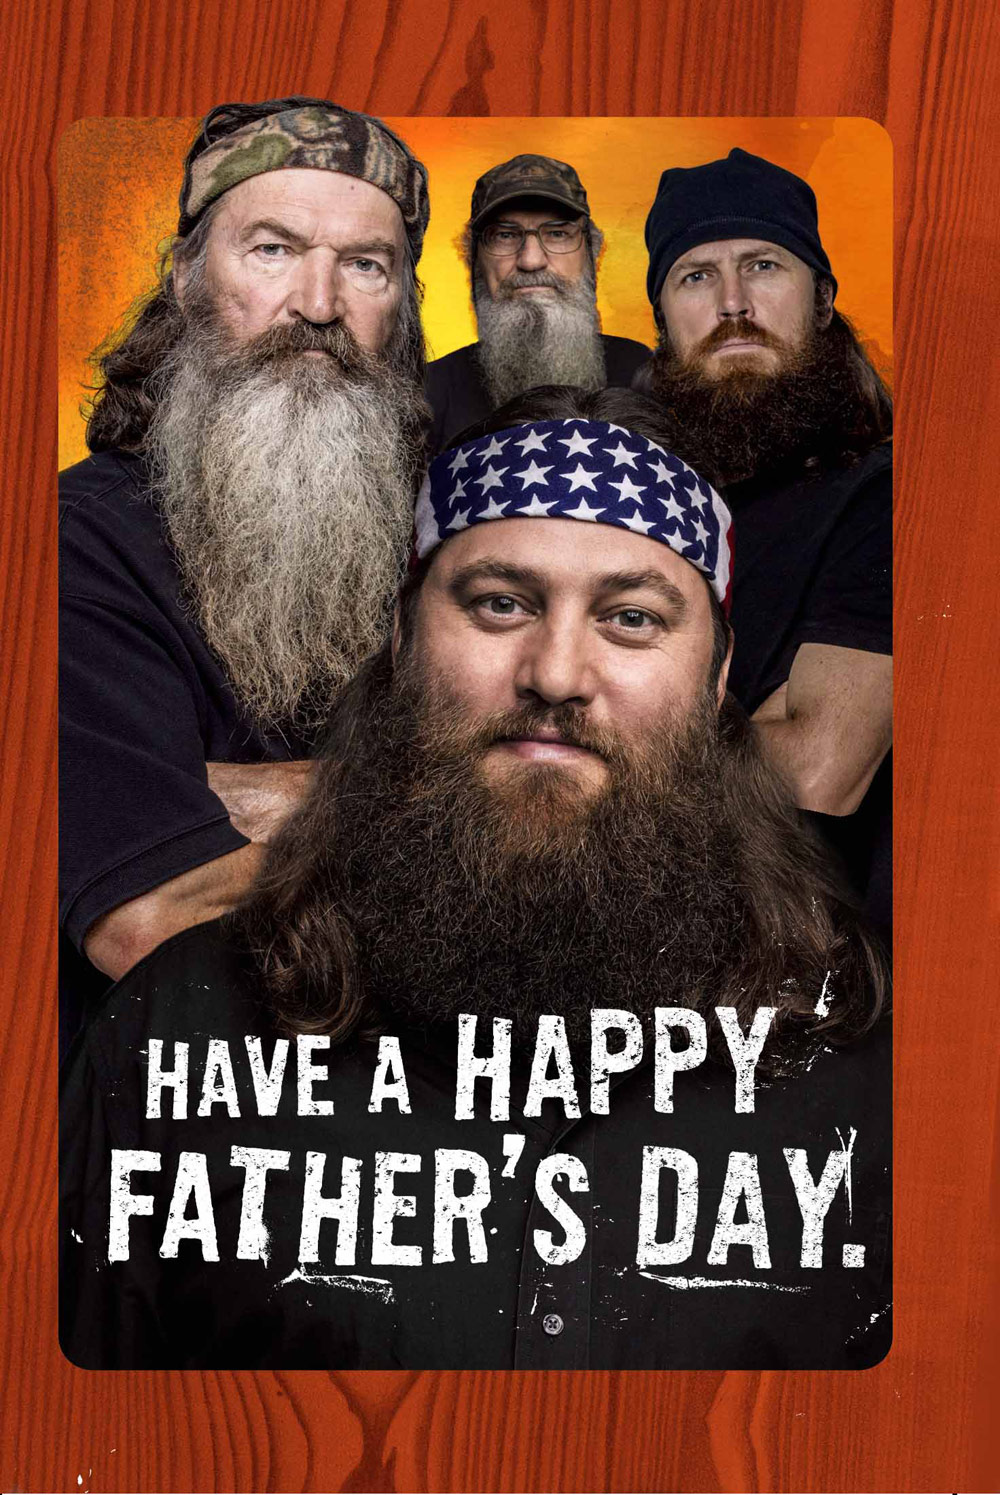 The Duck Dynasty Hallmark Father's Day card